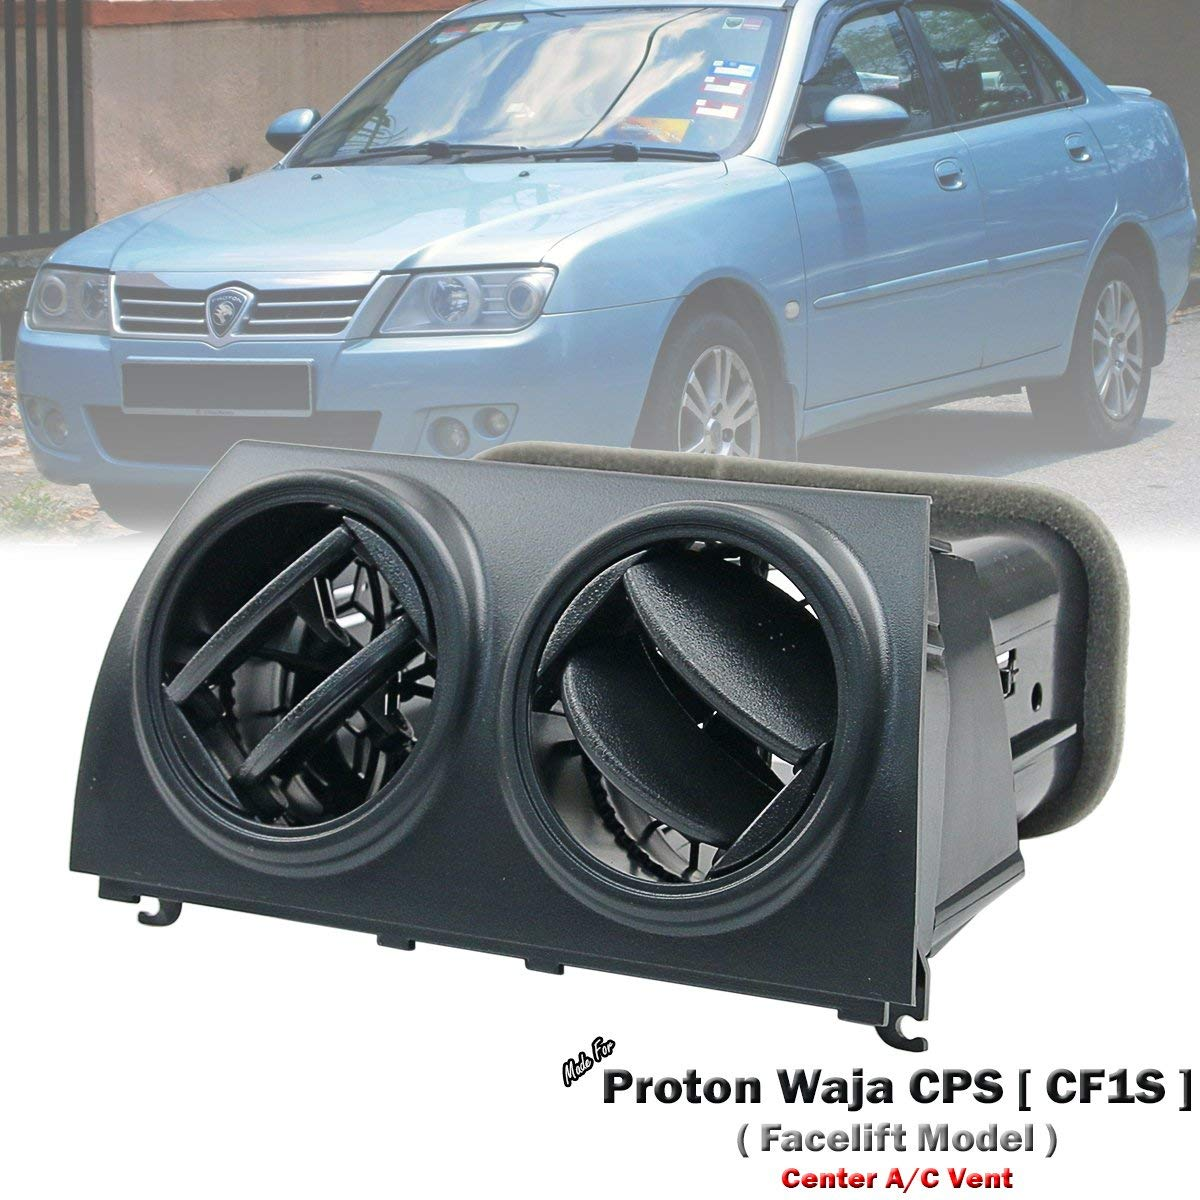 Cheap Proton Waja Service Manual Pdf, find Proton Waja Service